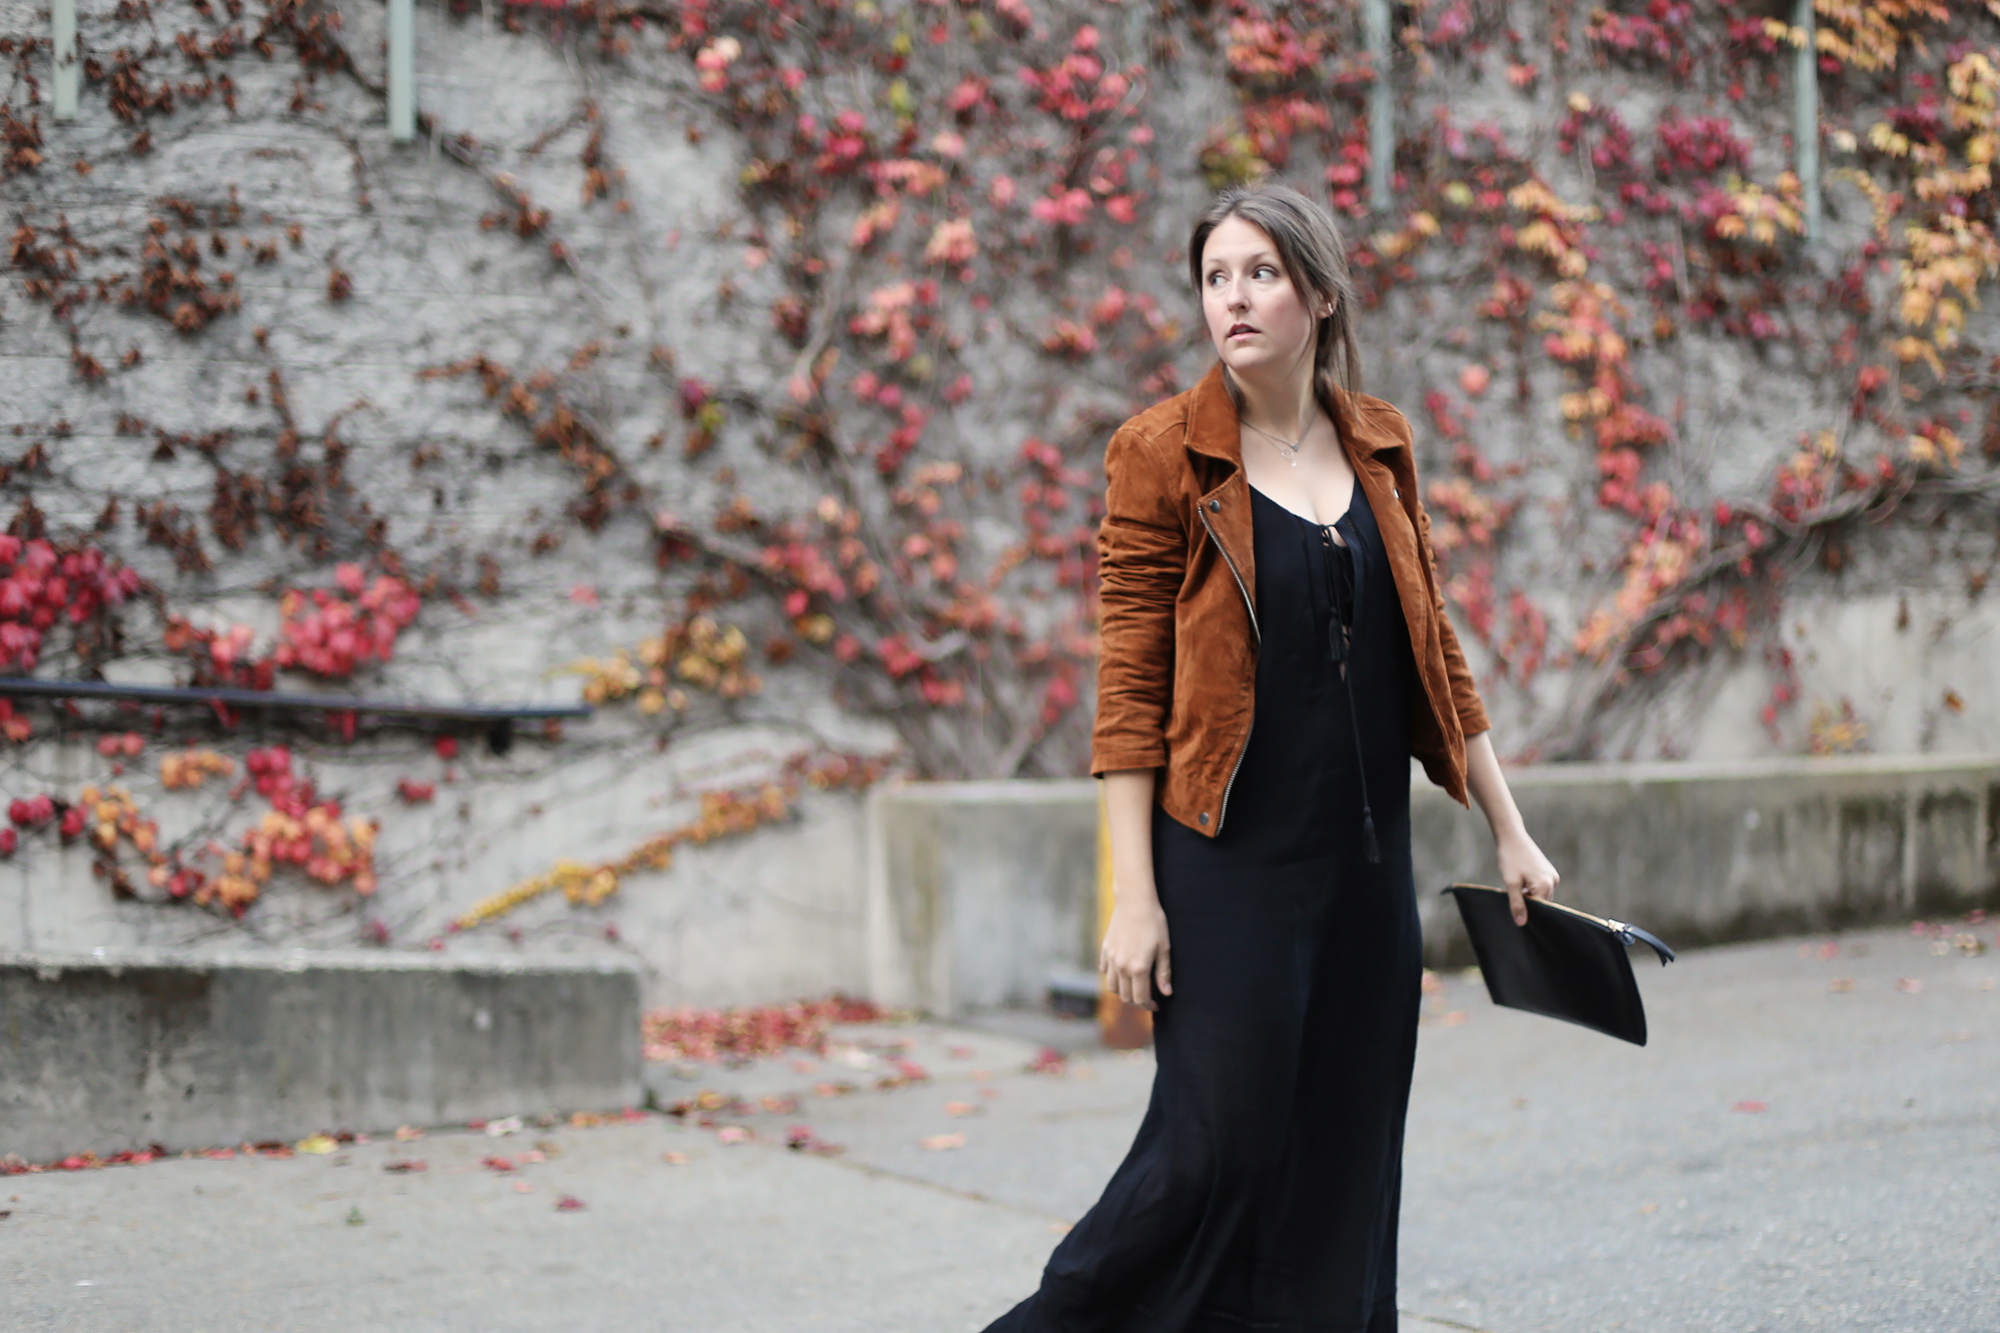 Gorgeous fall fashion! I love how she styled this black maxi dress so she can wear it in the fall. #fashion